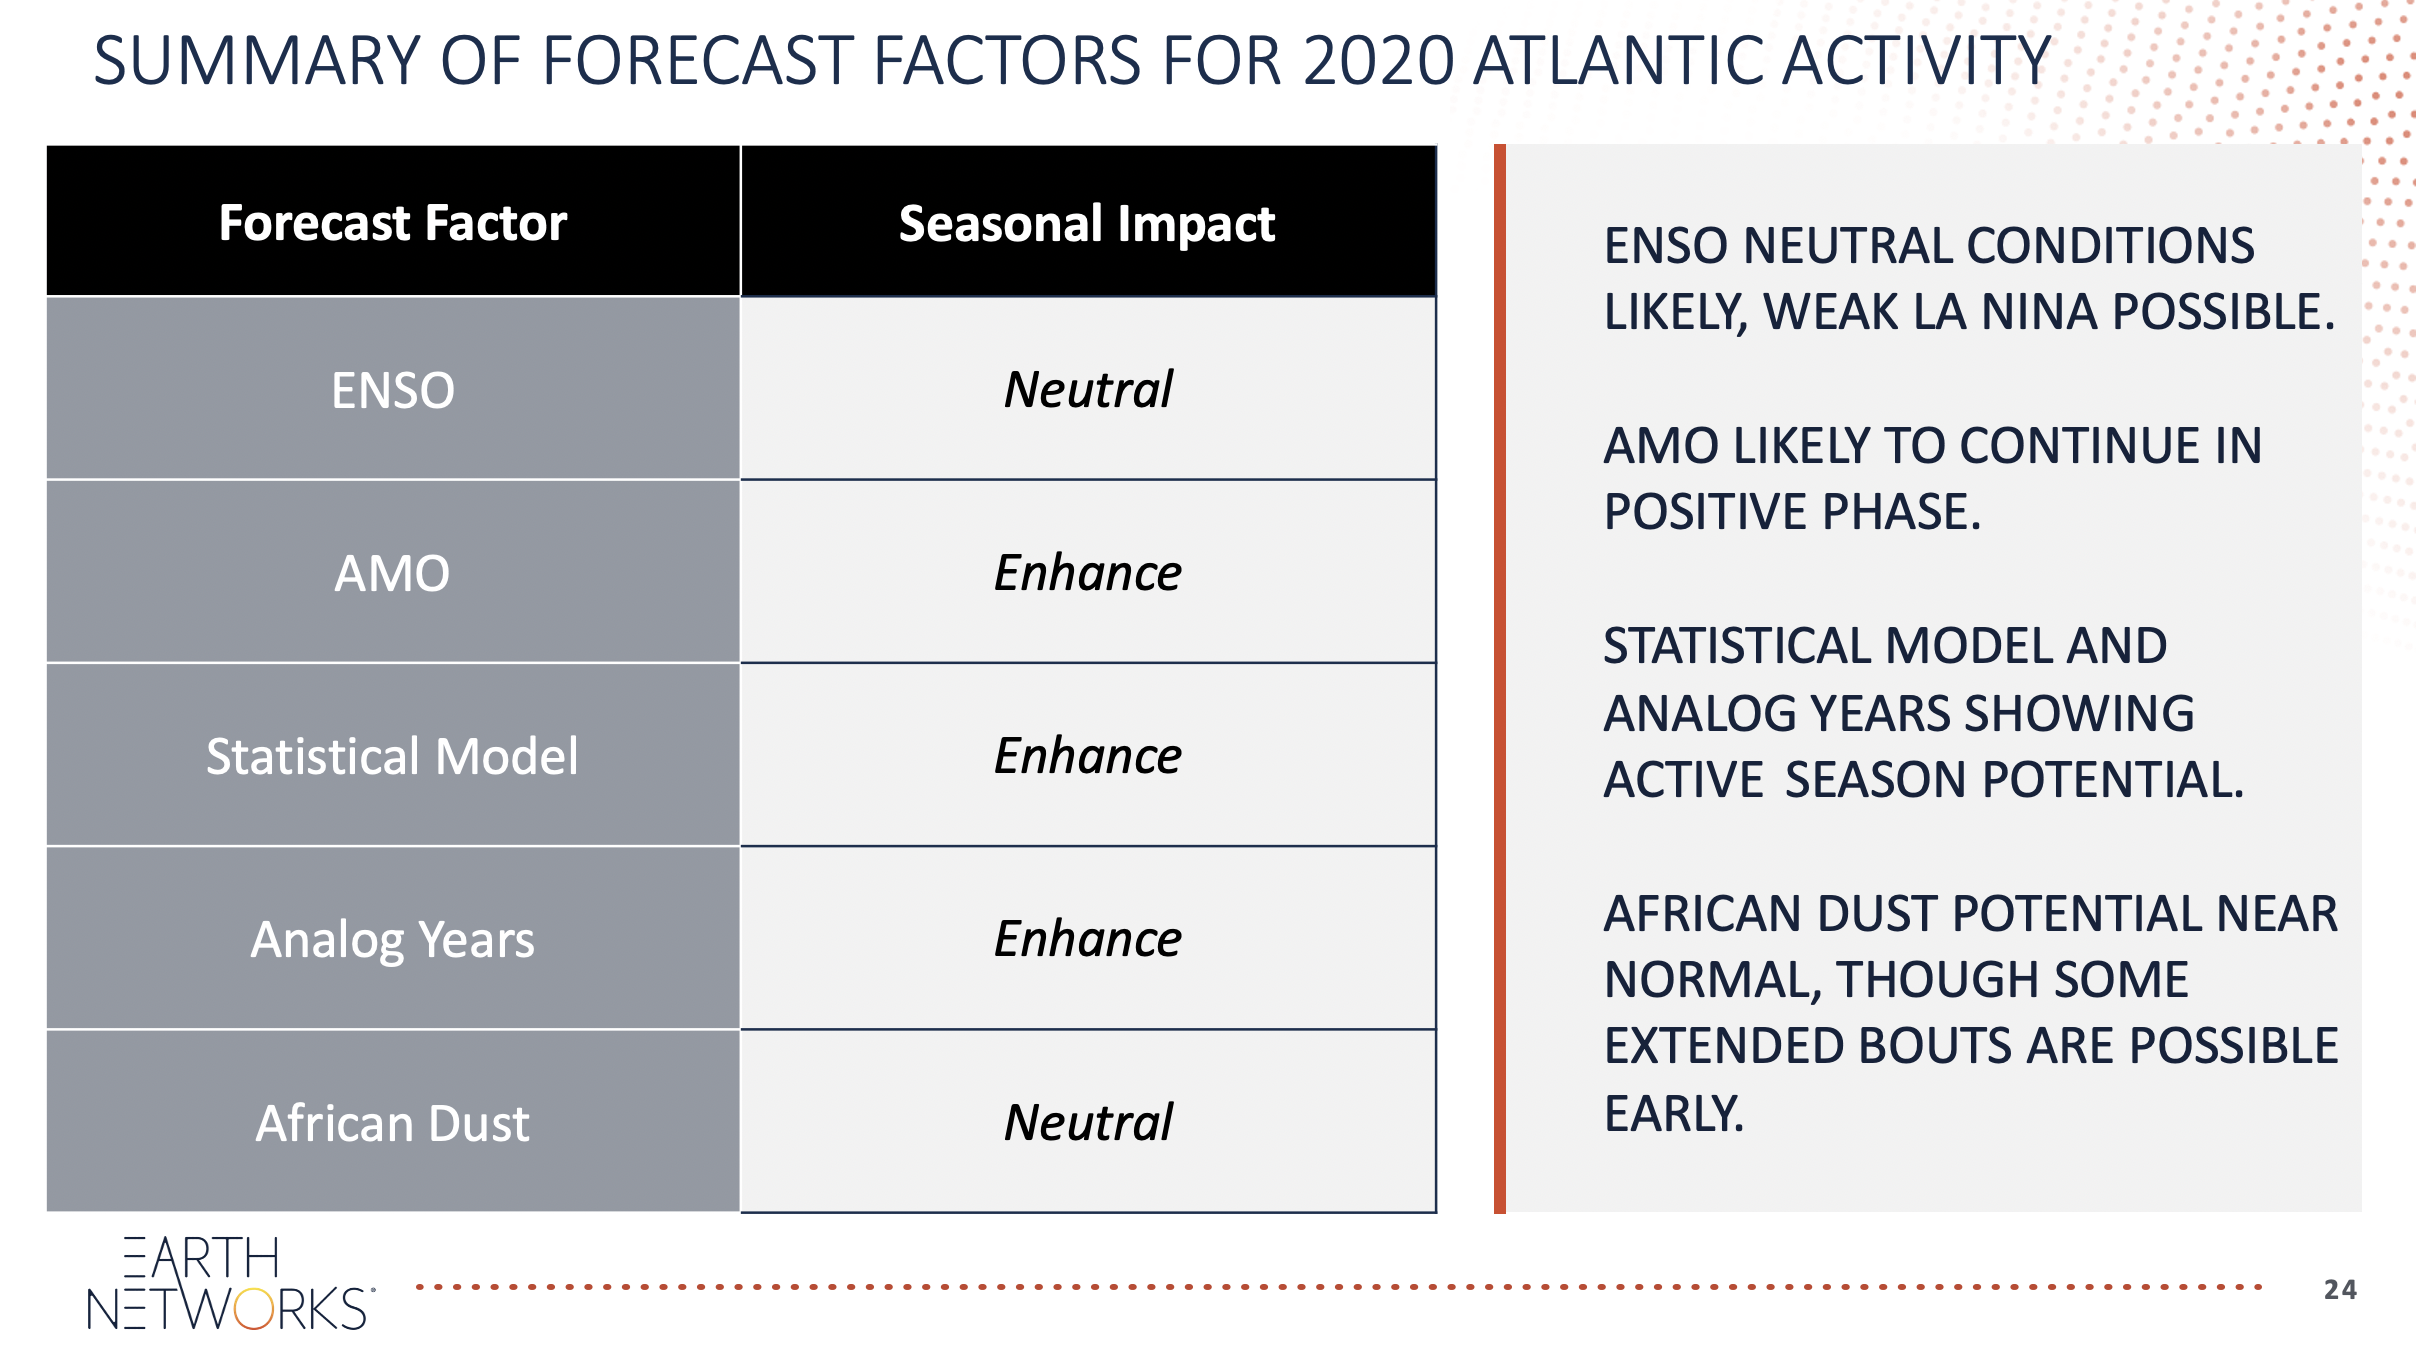 2020 Hurricane Season Predictors and Factors